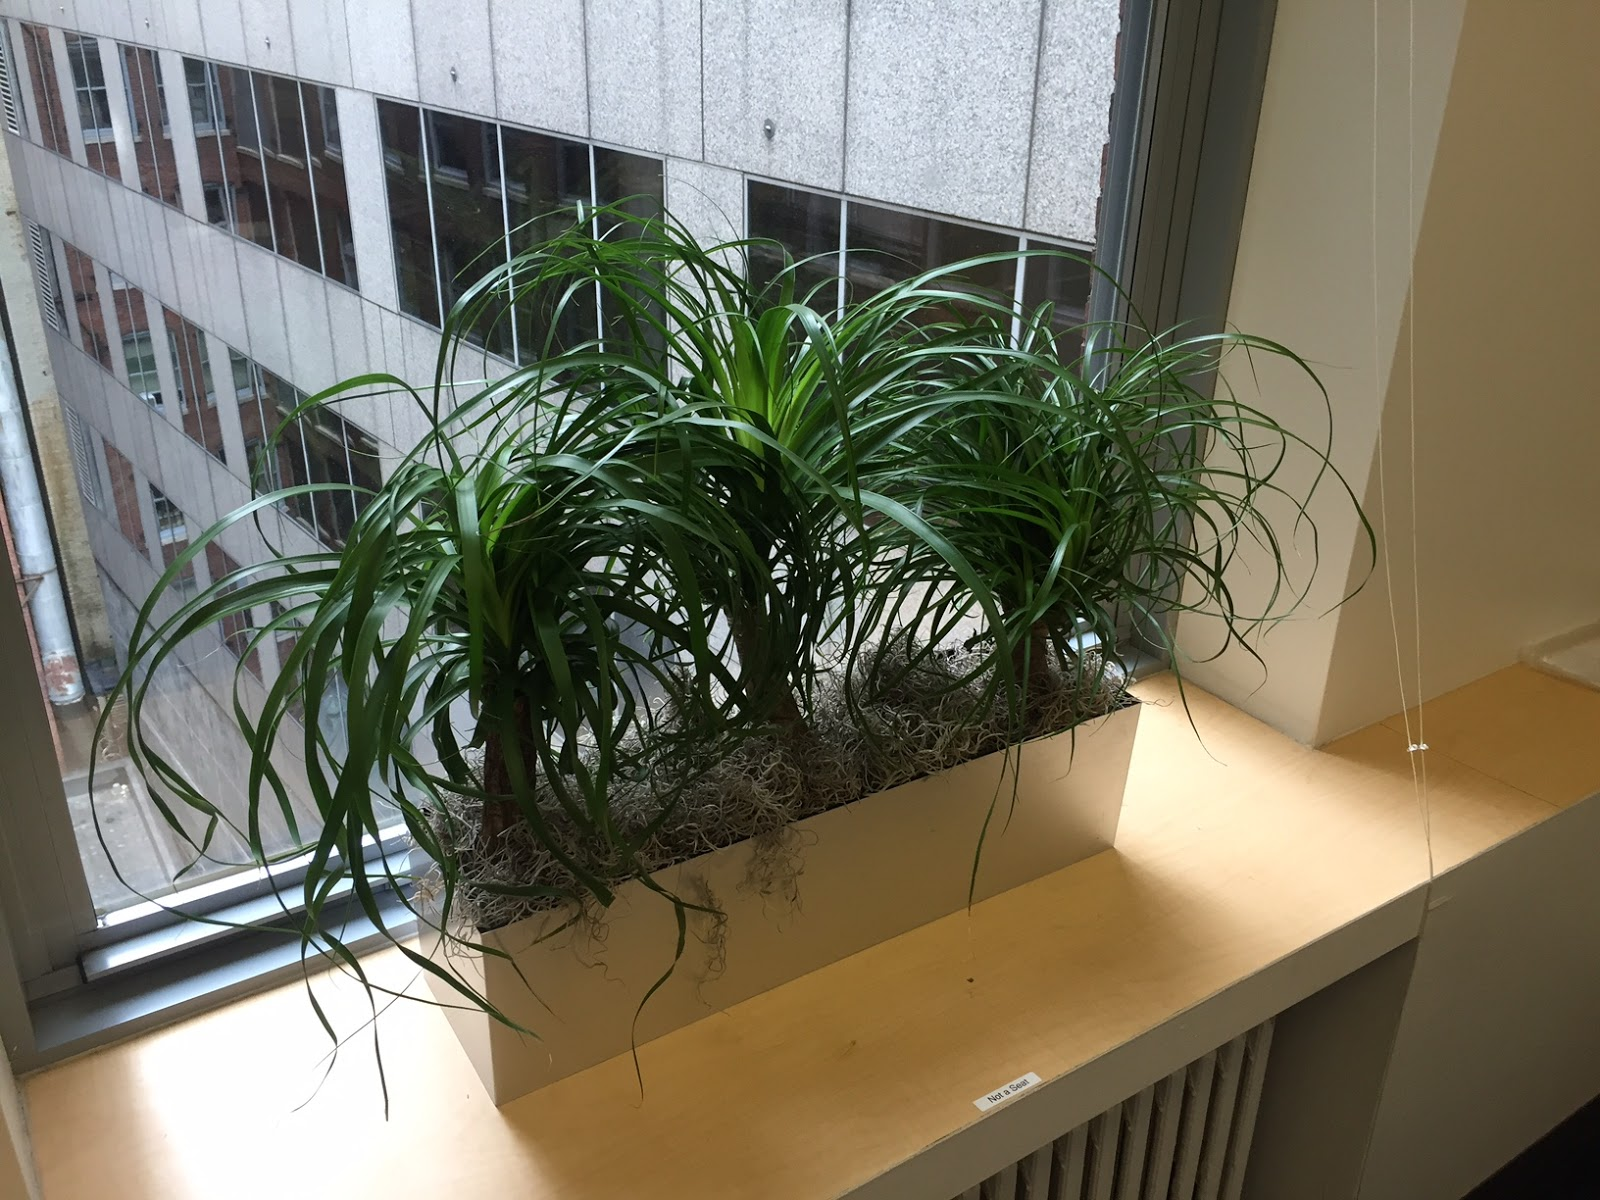 Pdi Plants Blog New Best Discounted Rectangular Planters For Your Interior Office Plantscapes